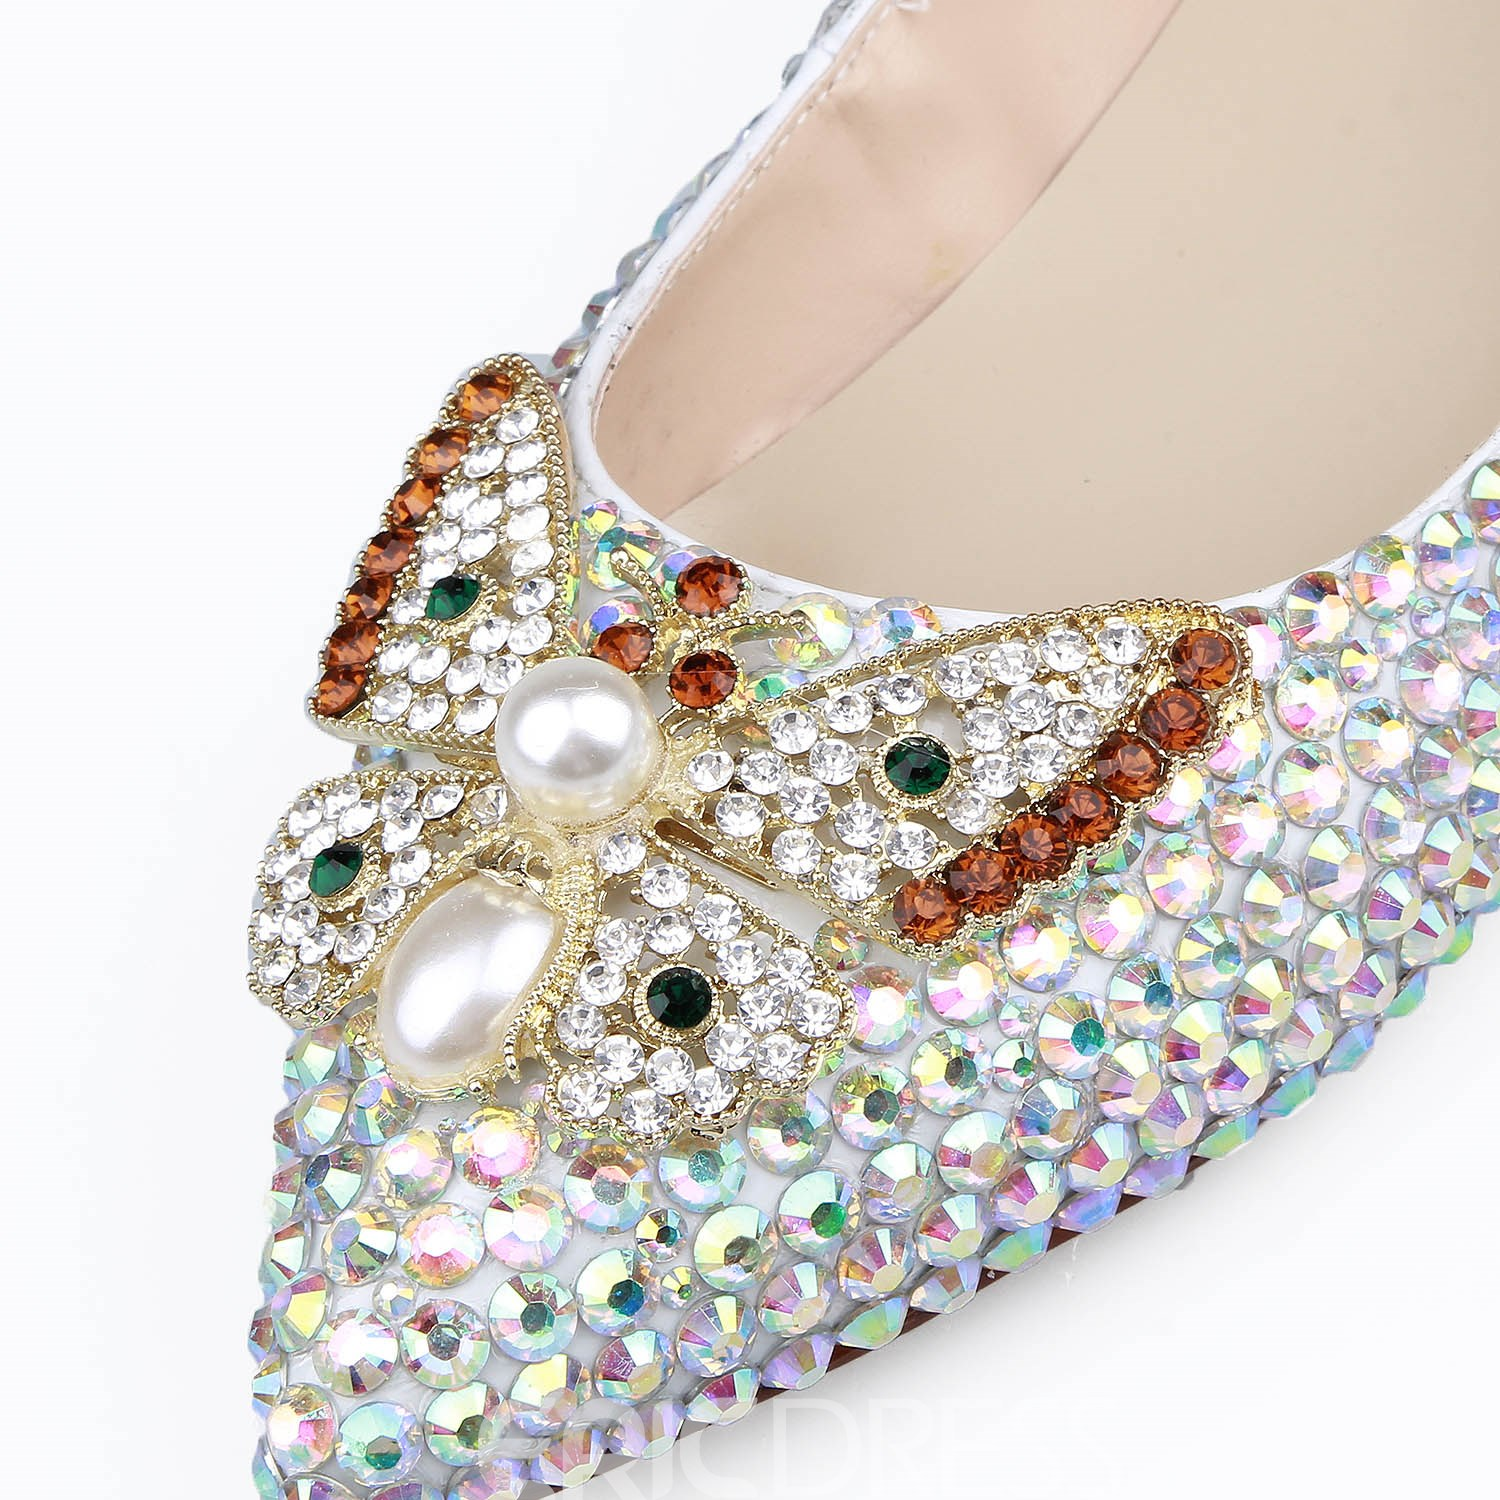 Ericdress Rhinestone Pointed Toe Plain Wedding Shoes with Beads